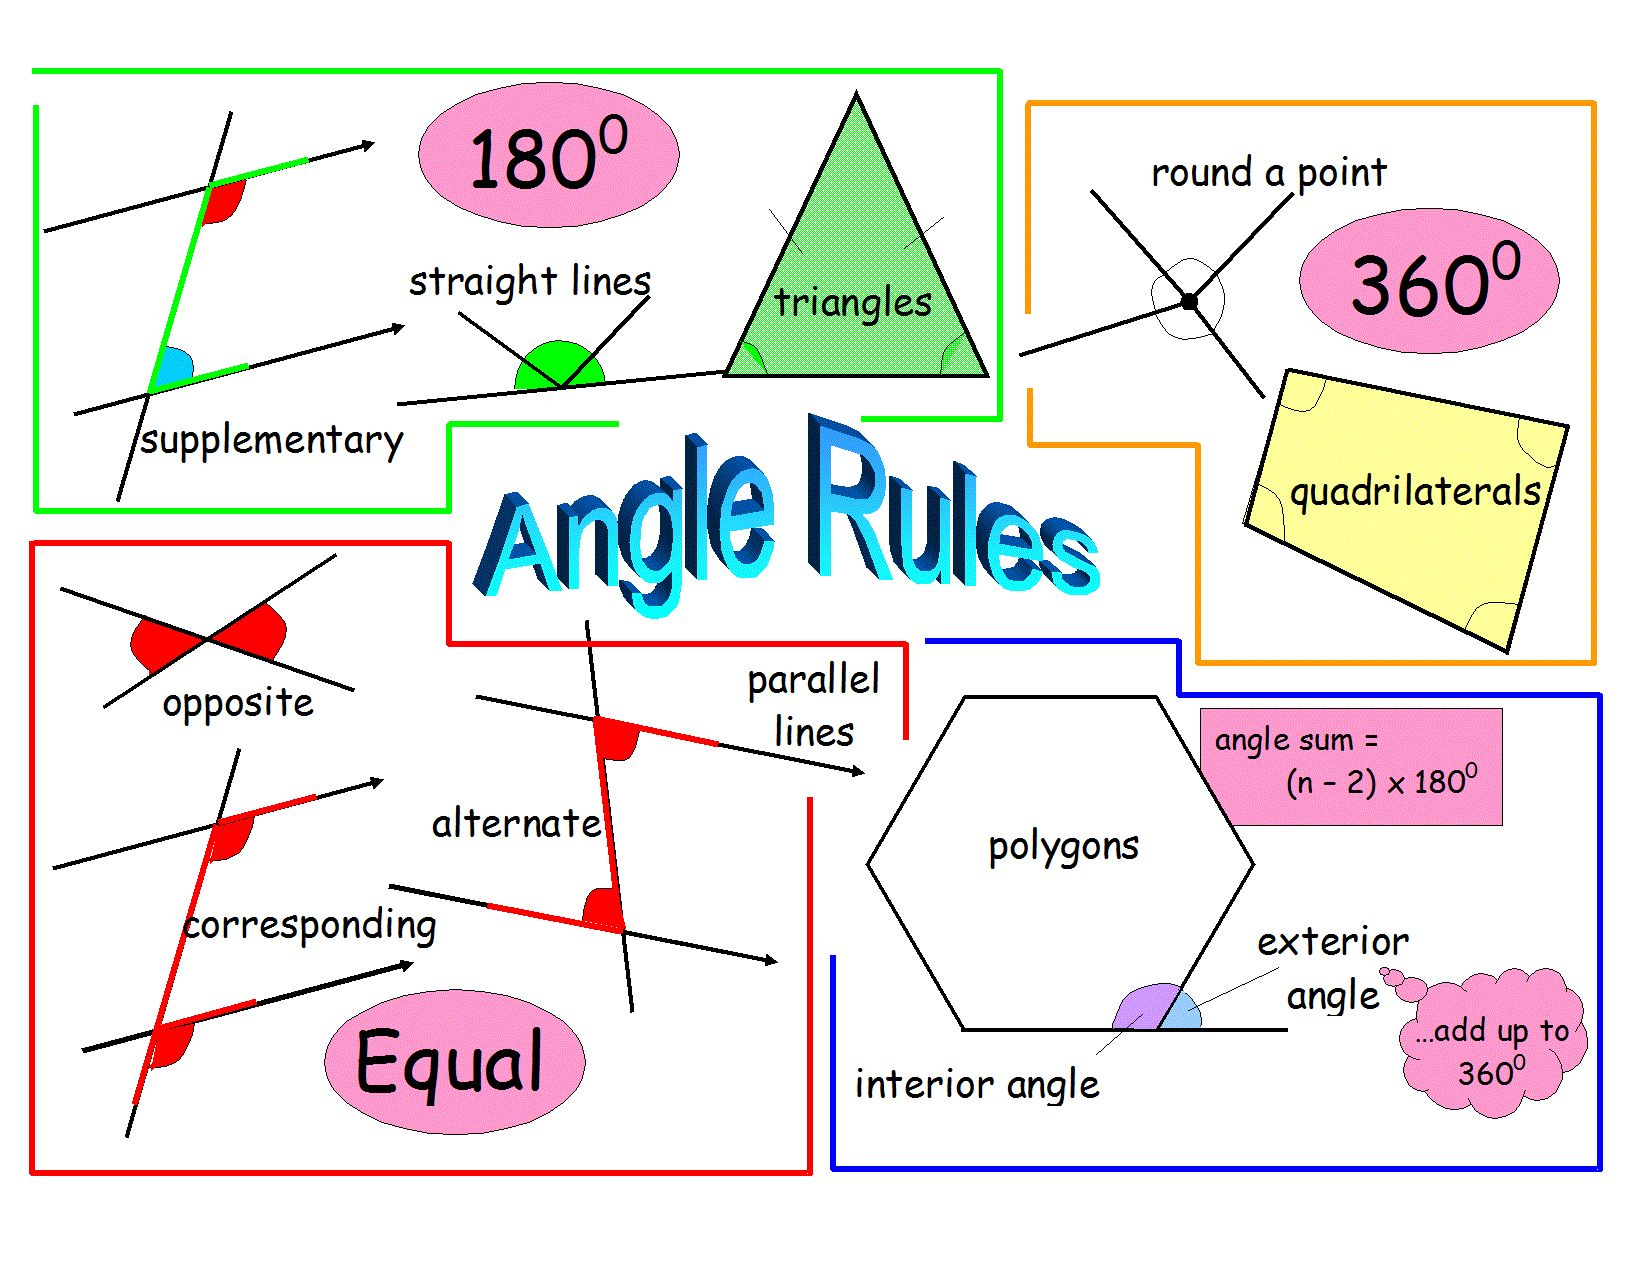 Angle Rules Revision Poster